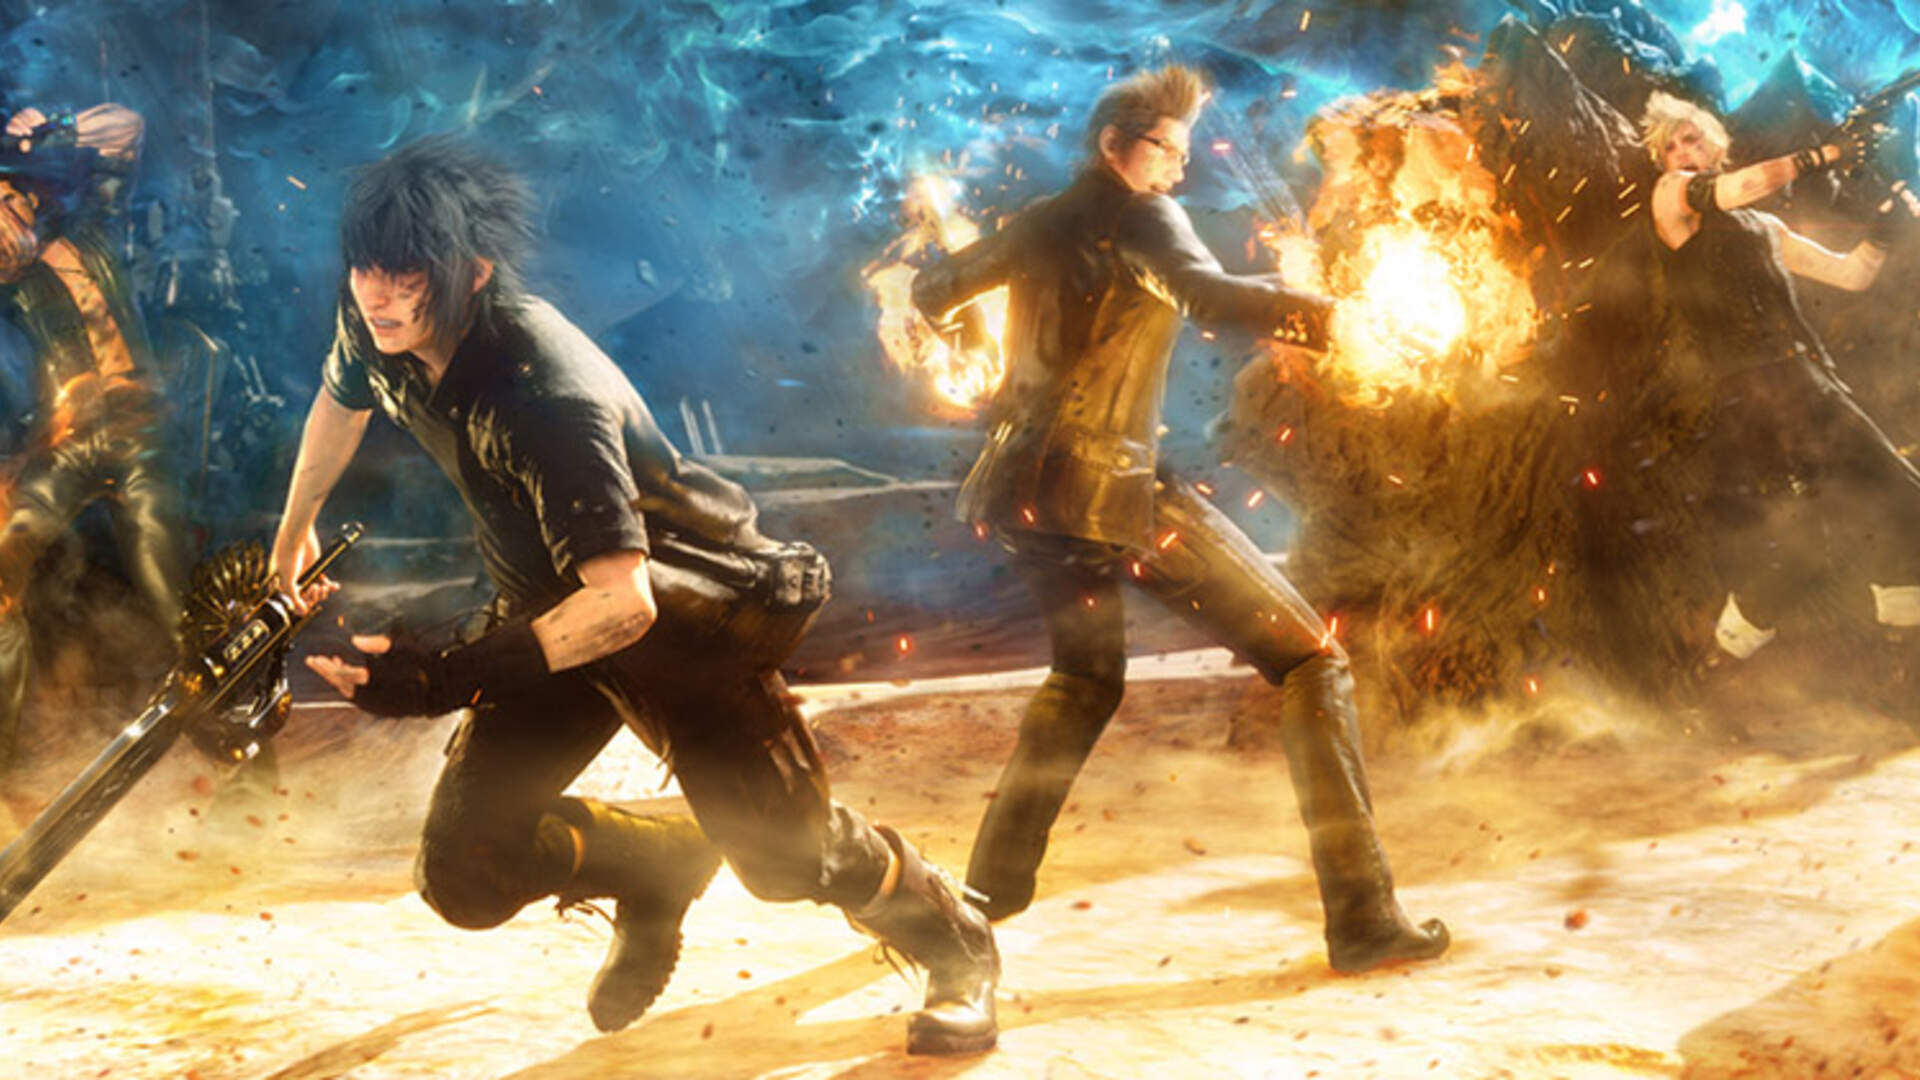 Watch and Discuss the Square-Enix Conference Today at 10:00am PT on USgamer!